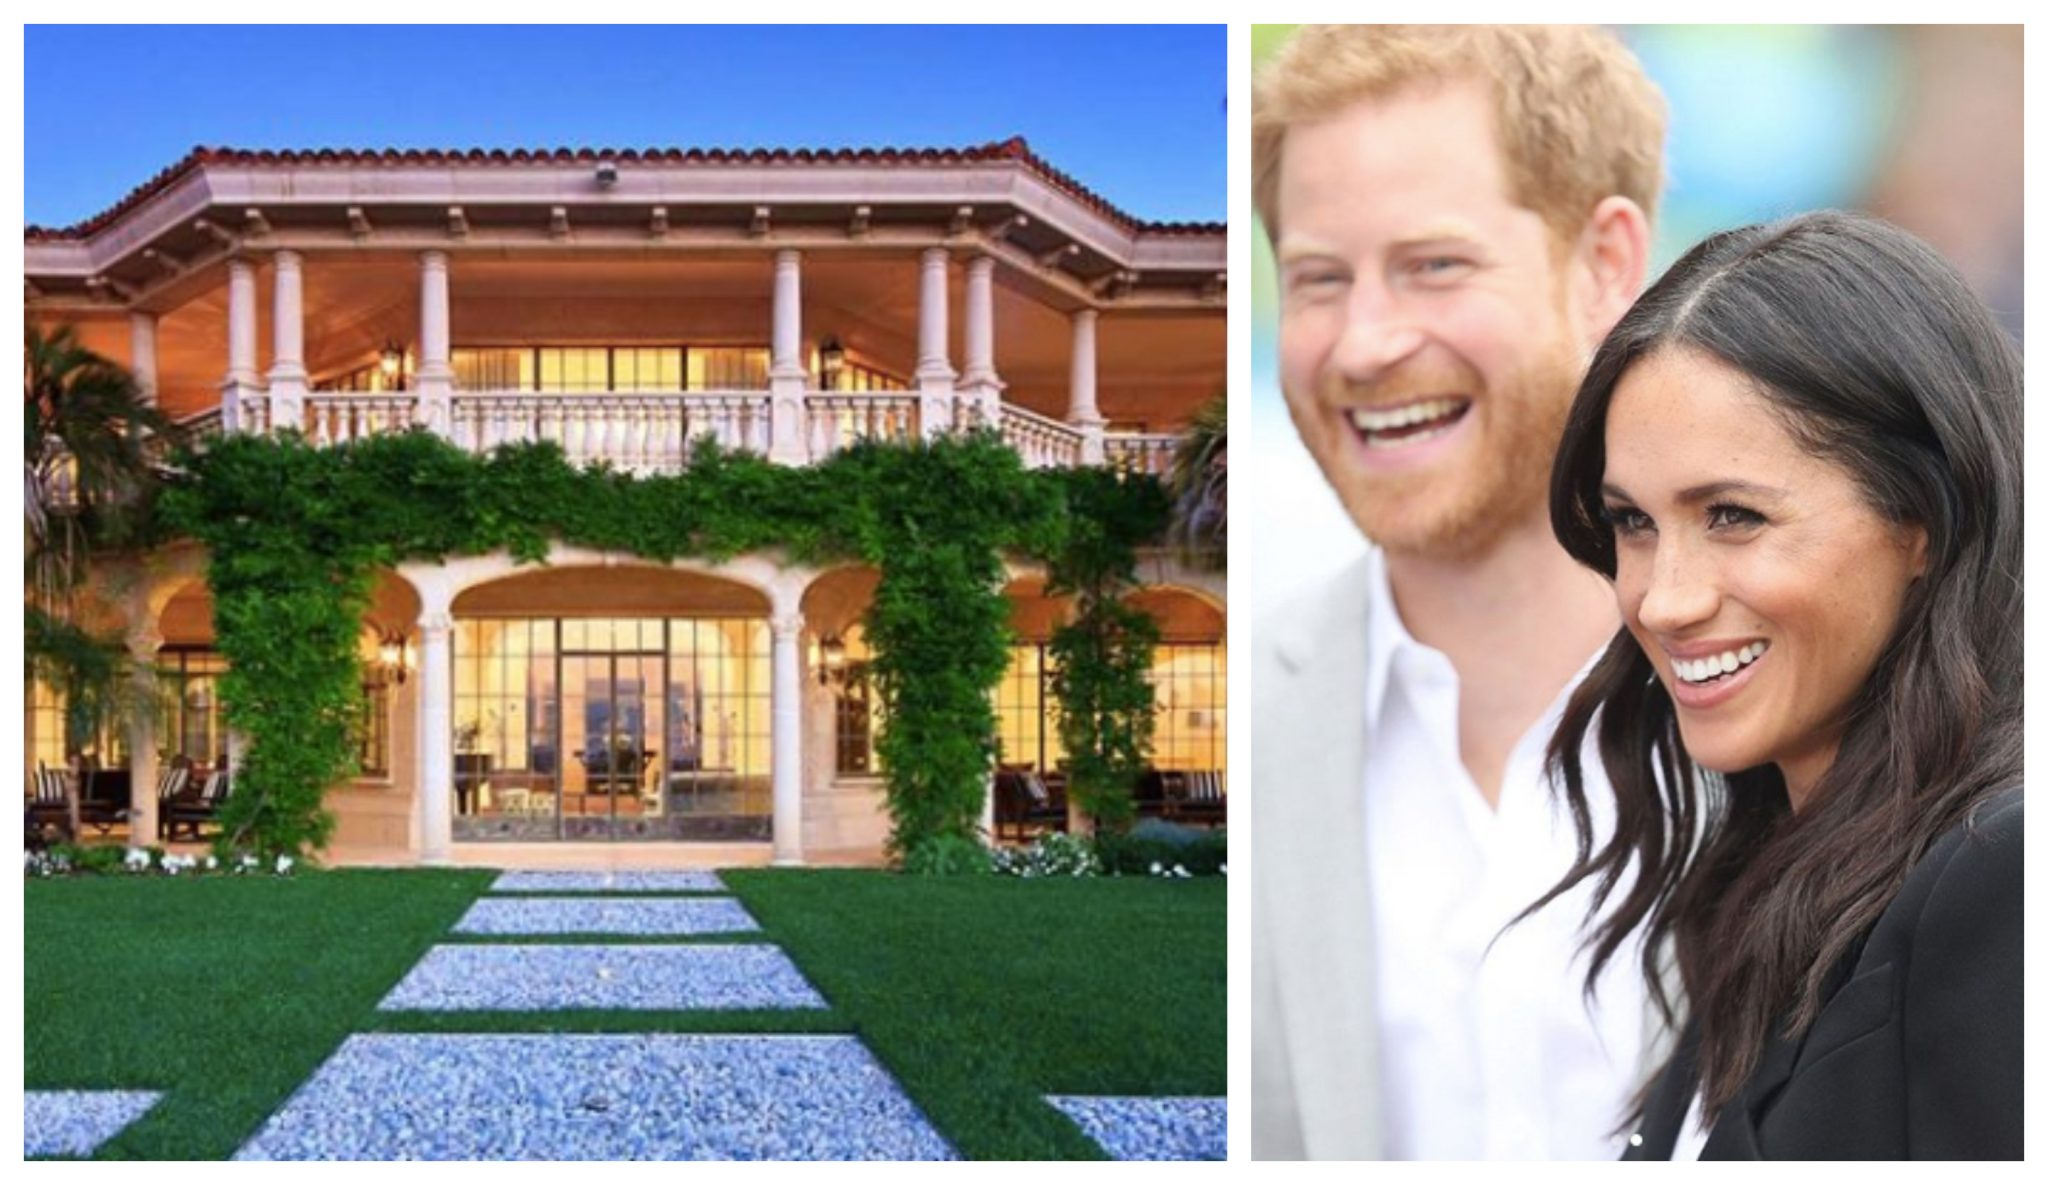 Prince Harry And Meghan Markle Are Staying In A Gorgeous Mansion For The Invictus Games